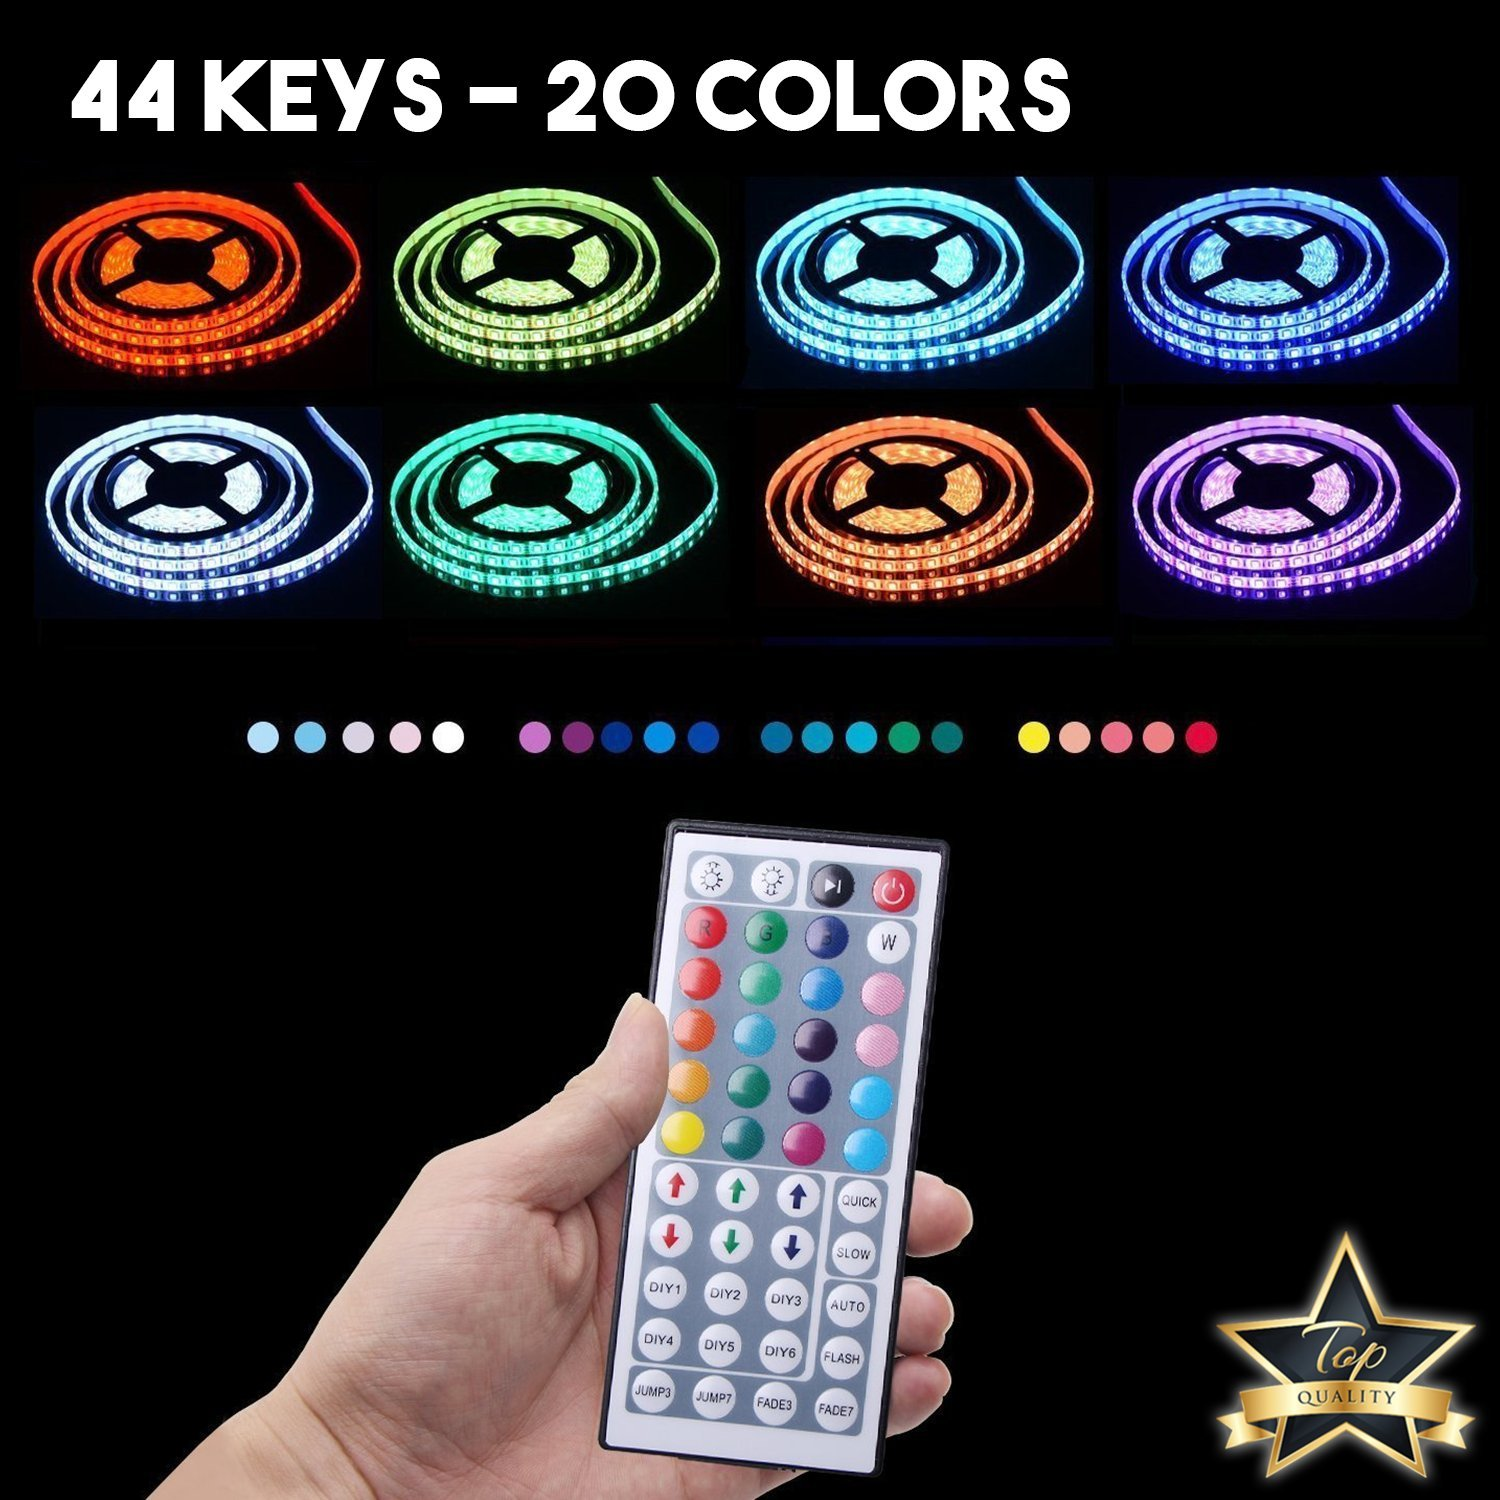 LED Strip Lights - Waterproof Led Tape Lights - Dimmable Multicolored LED Lights Kit 32.8ft/10m, 300LEDs, 5050RGB with 44Key Remote Controller and Power Adapter for Home, Kitchen, Cabinet Decoration by DOPTIKA (Image #3)